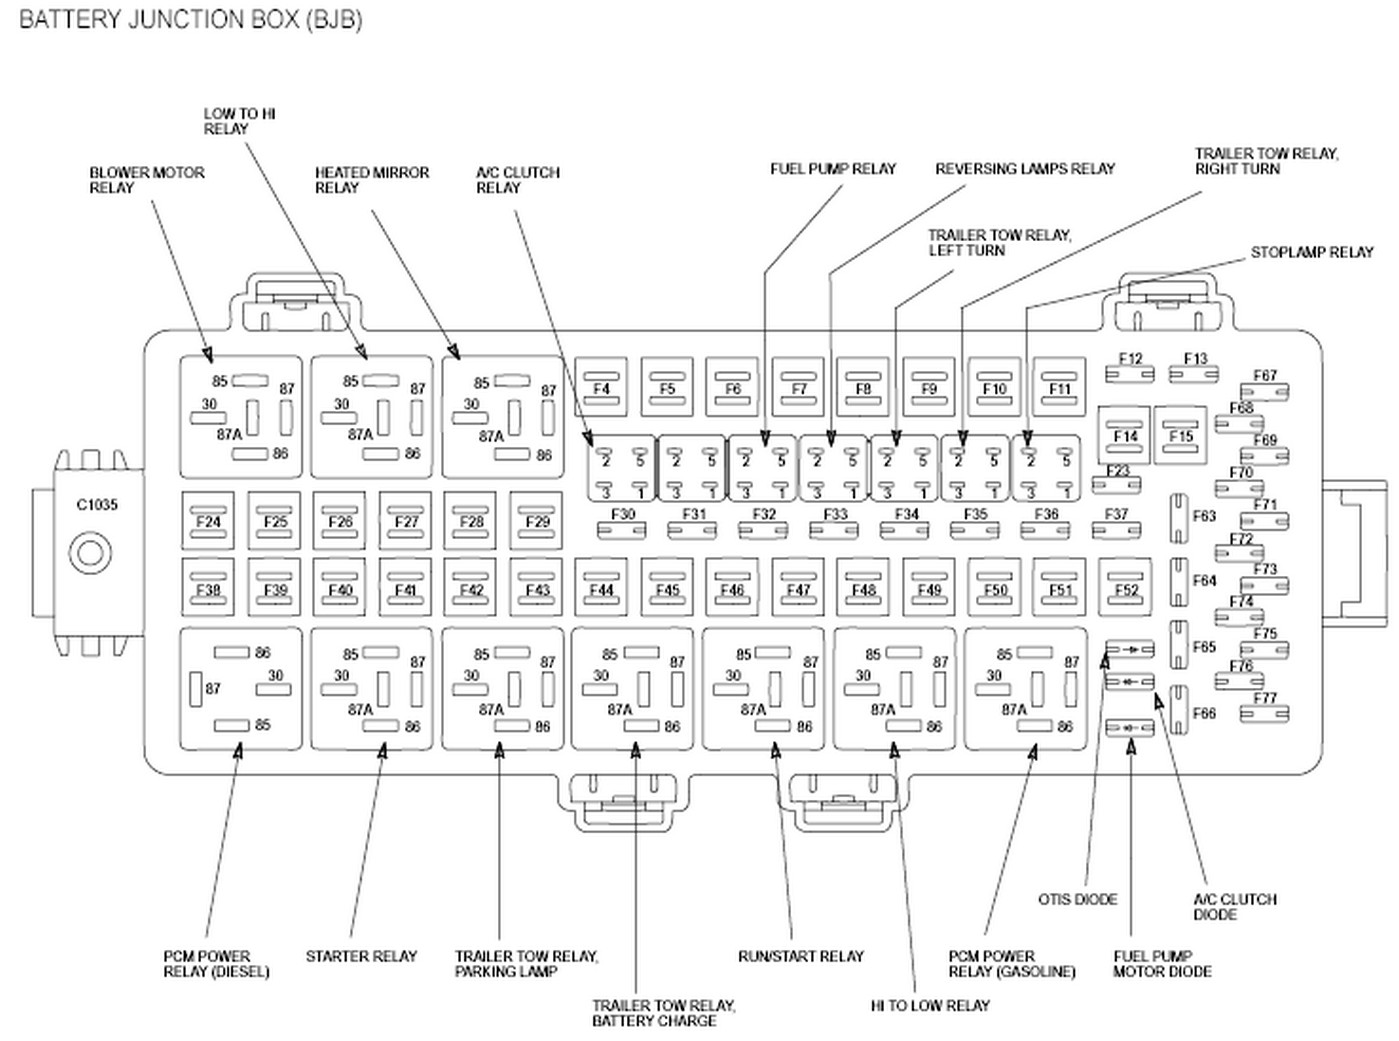 2011 ford f250 fuse box diagram Zoinyhu 2012 f250 fuse box location 2009 ford fusion fuse box diagram  at readyjetset.co